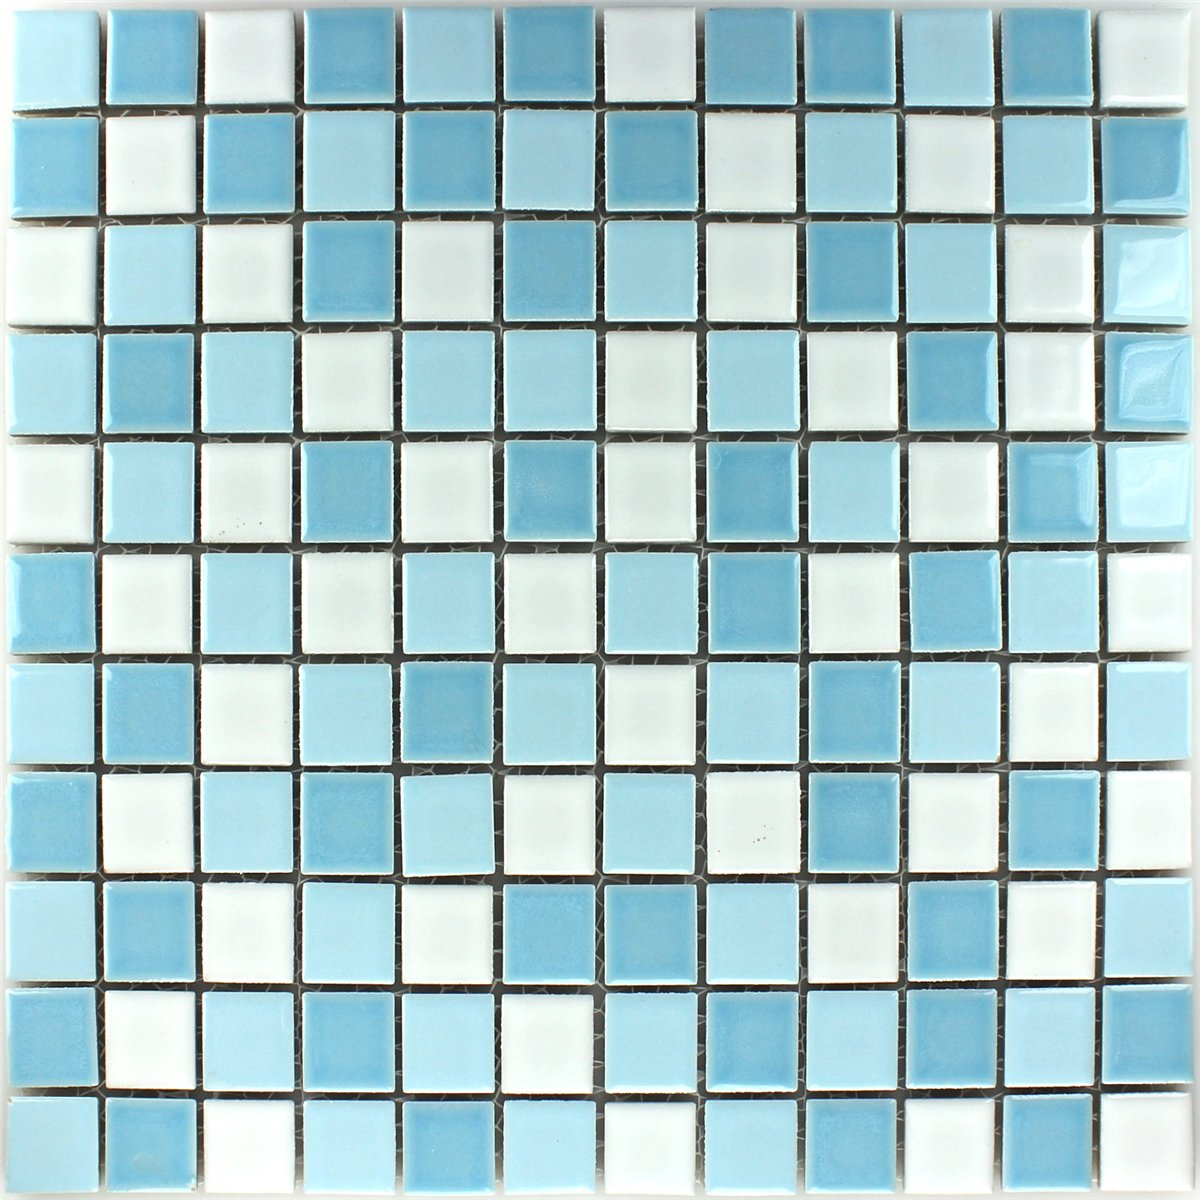 Ceramic mosaic tiles blue white 25x25x5mm mosafil mosaic tiles ceramic blue white 25x25x5mm dailygadgetfo Choice Image